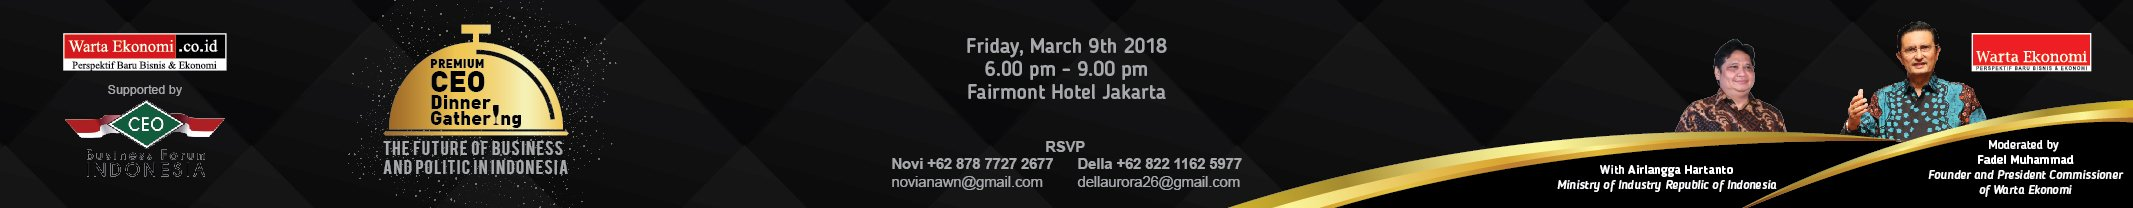 Dinner CEO Revisi